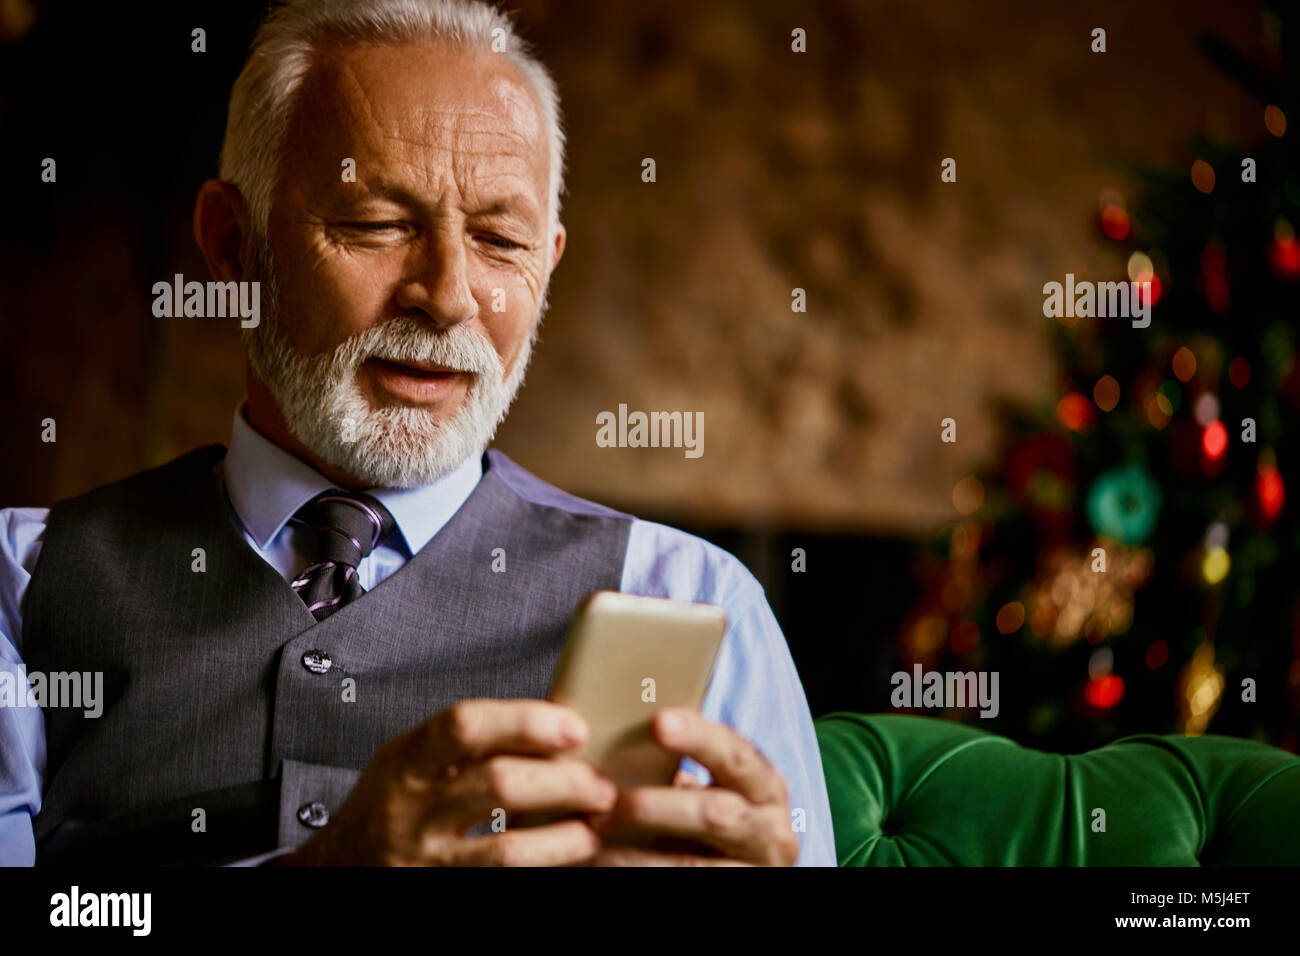 Elegant senior man using cell phone - Stock Image